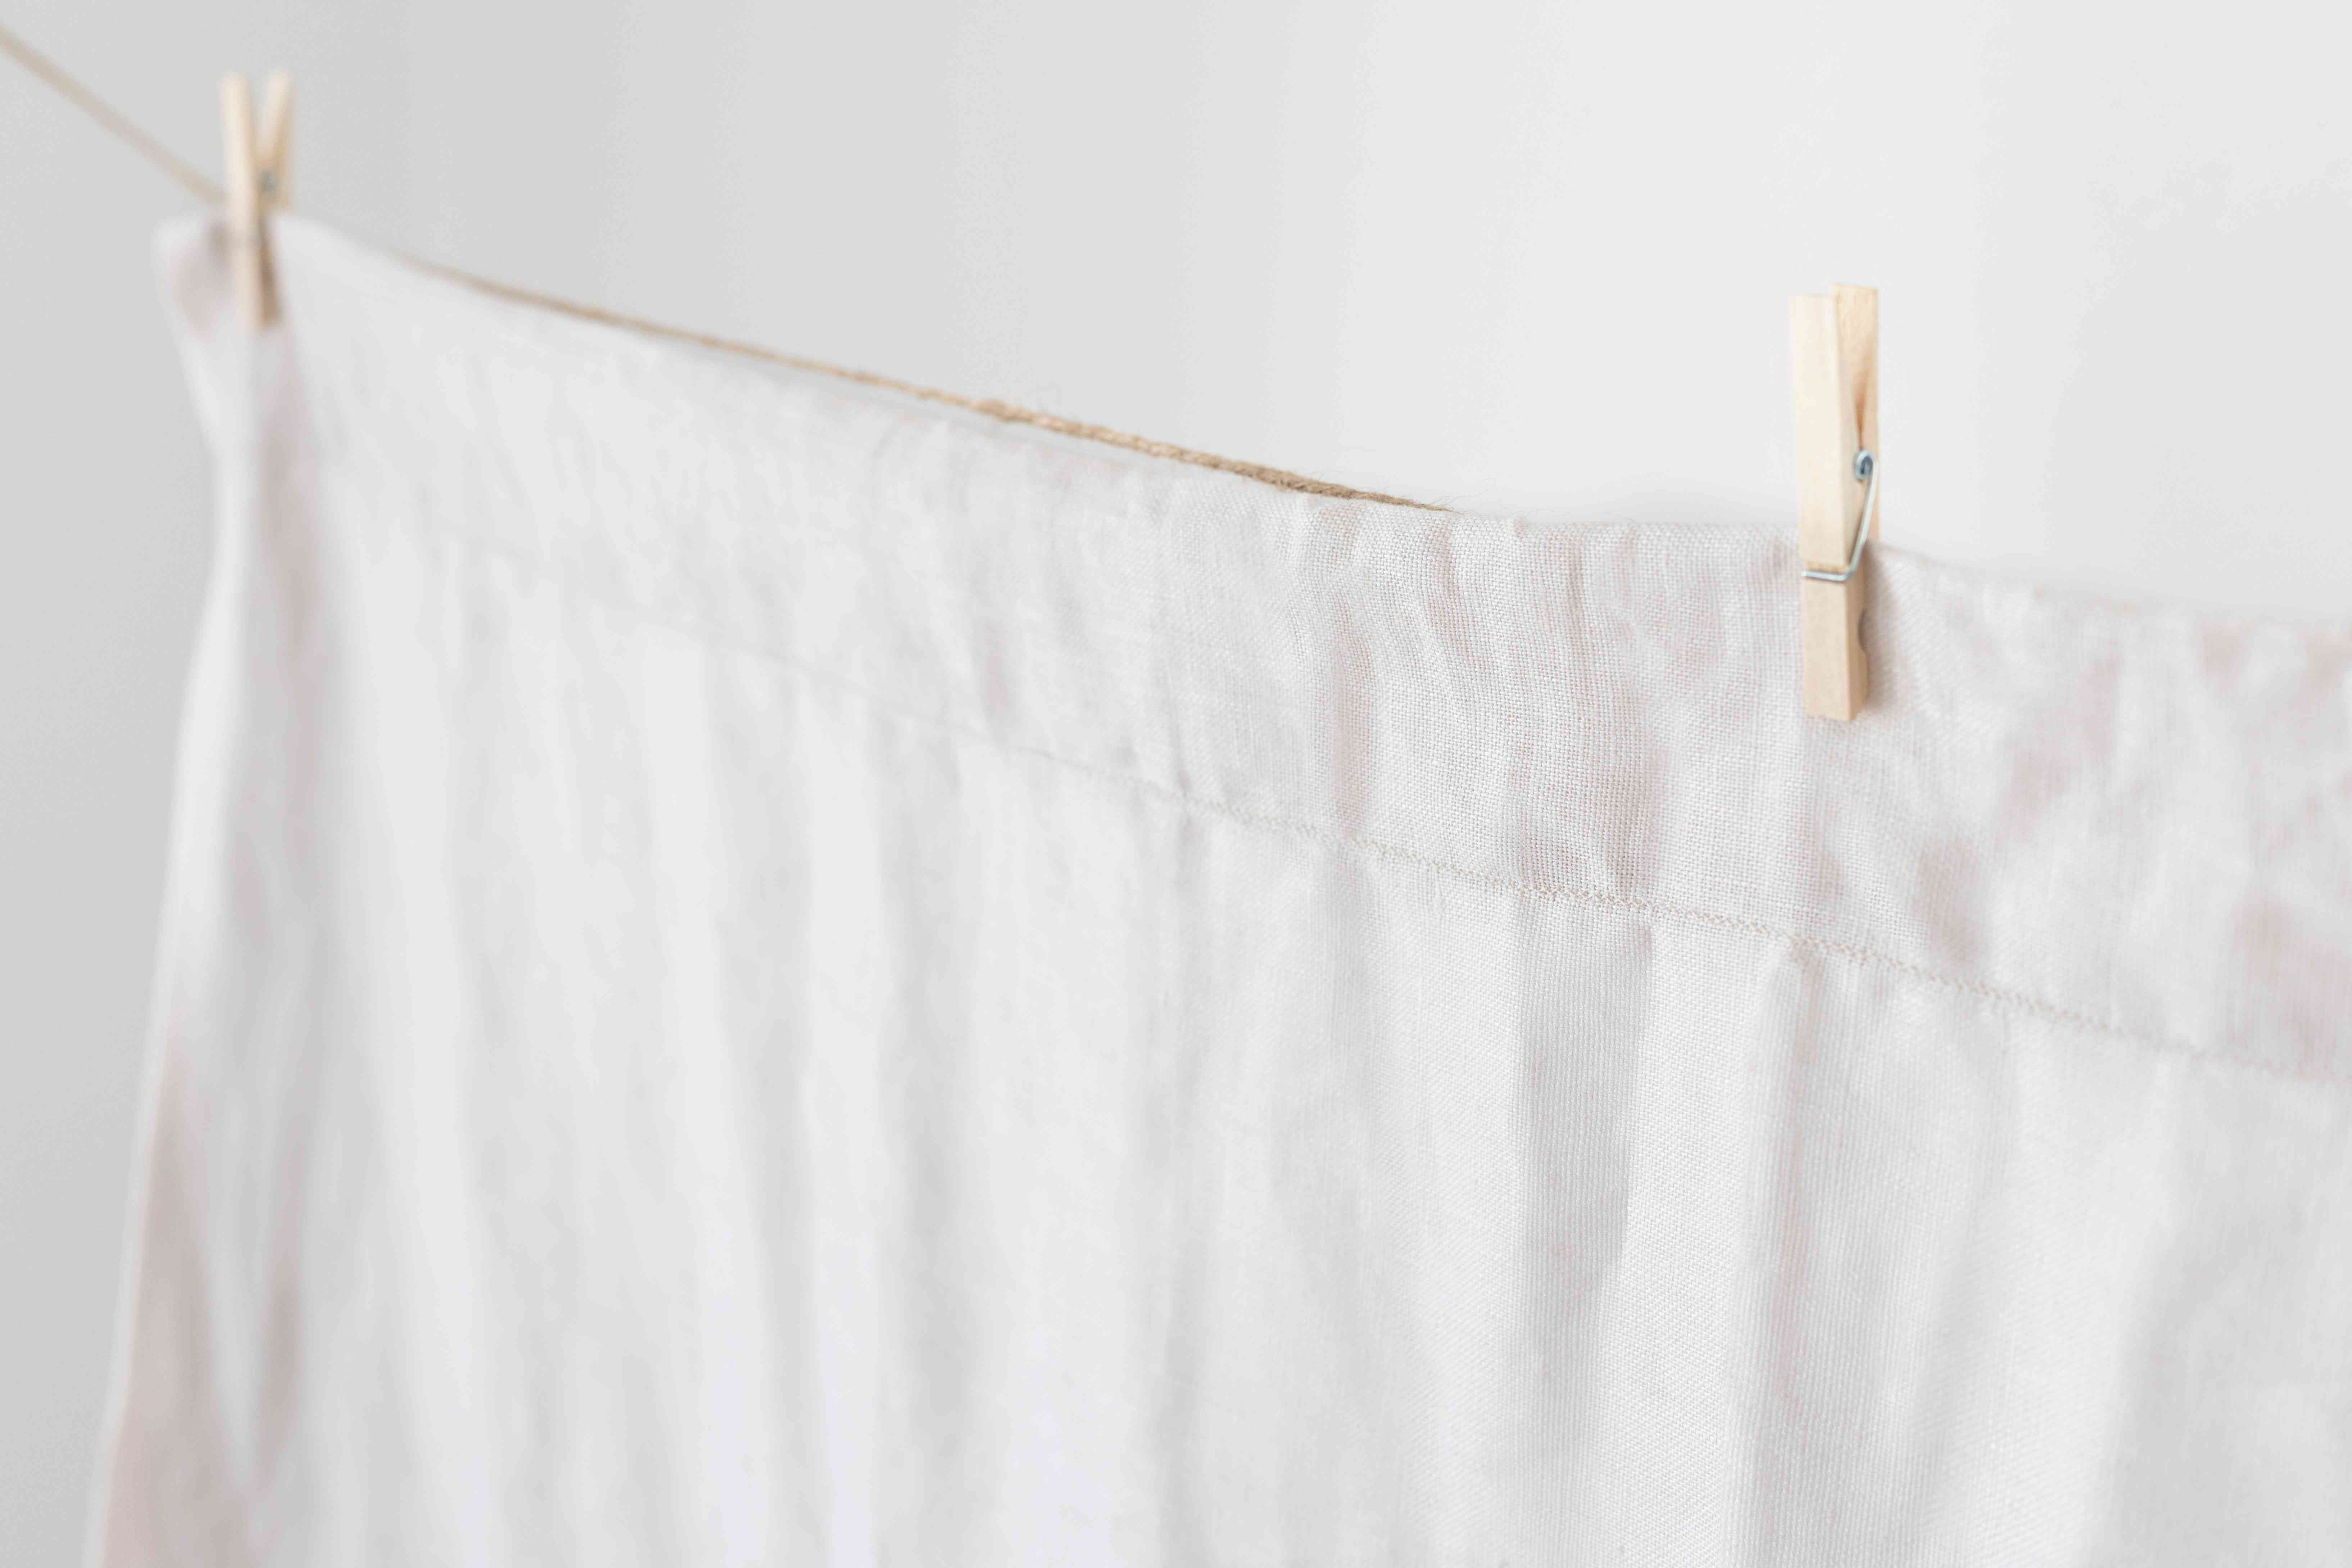 line-drying curtains